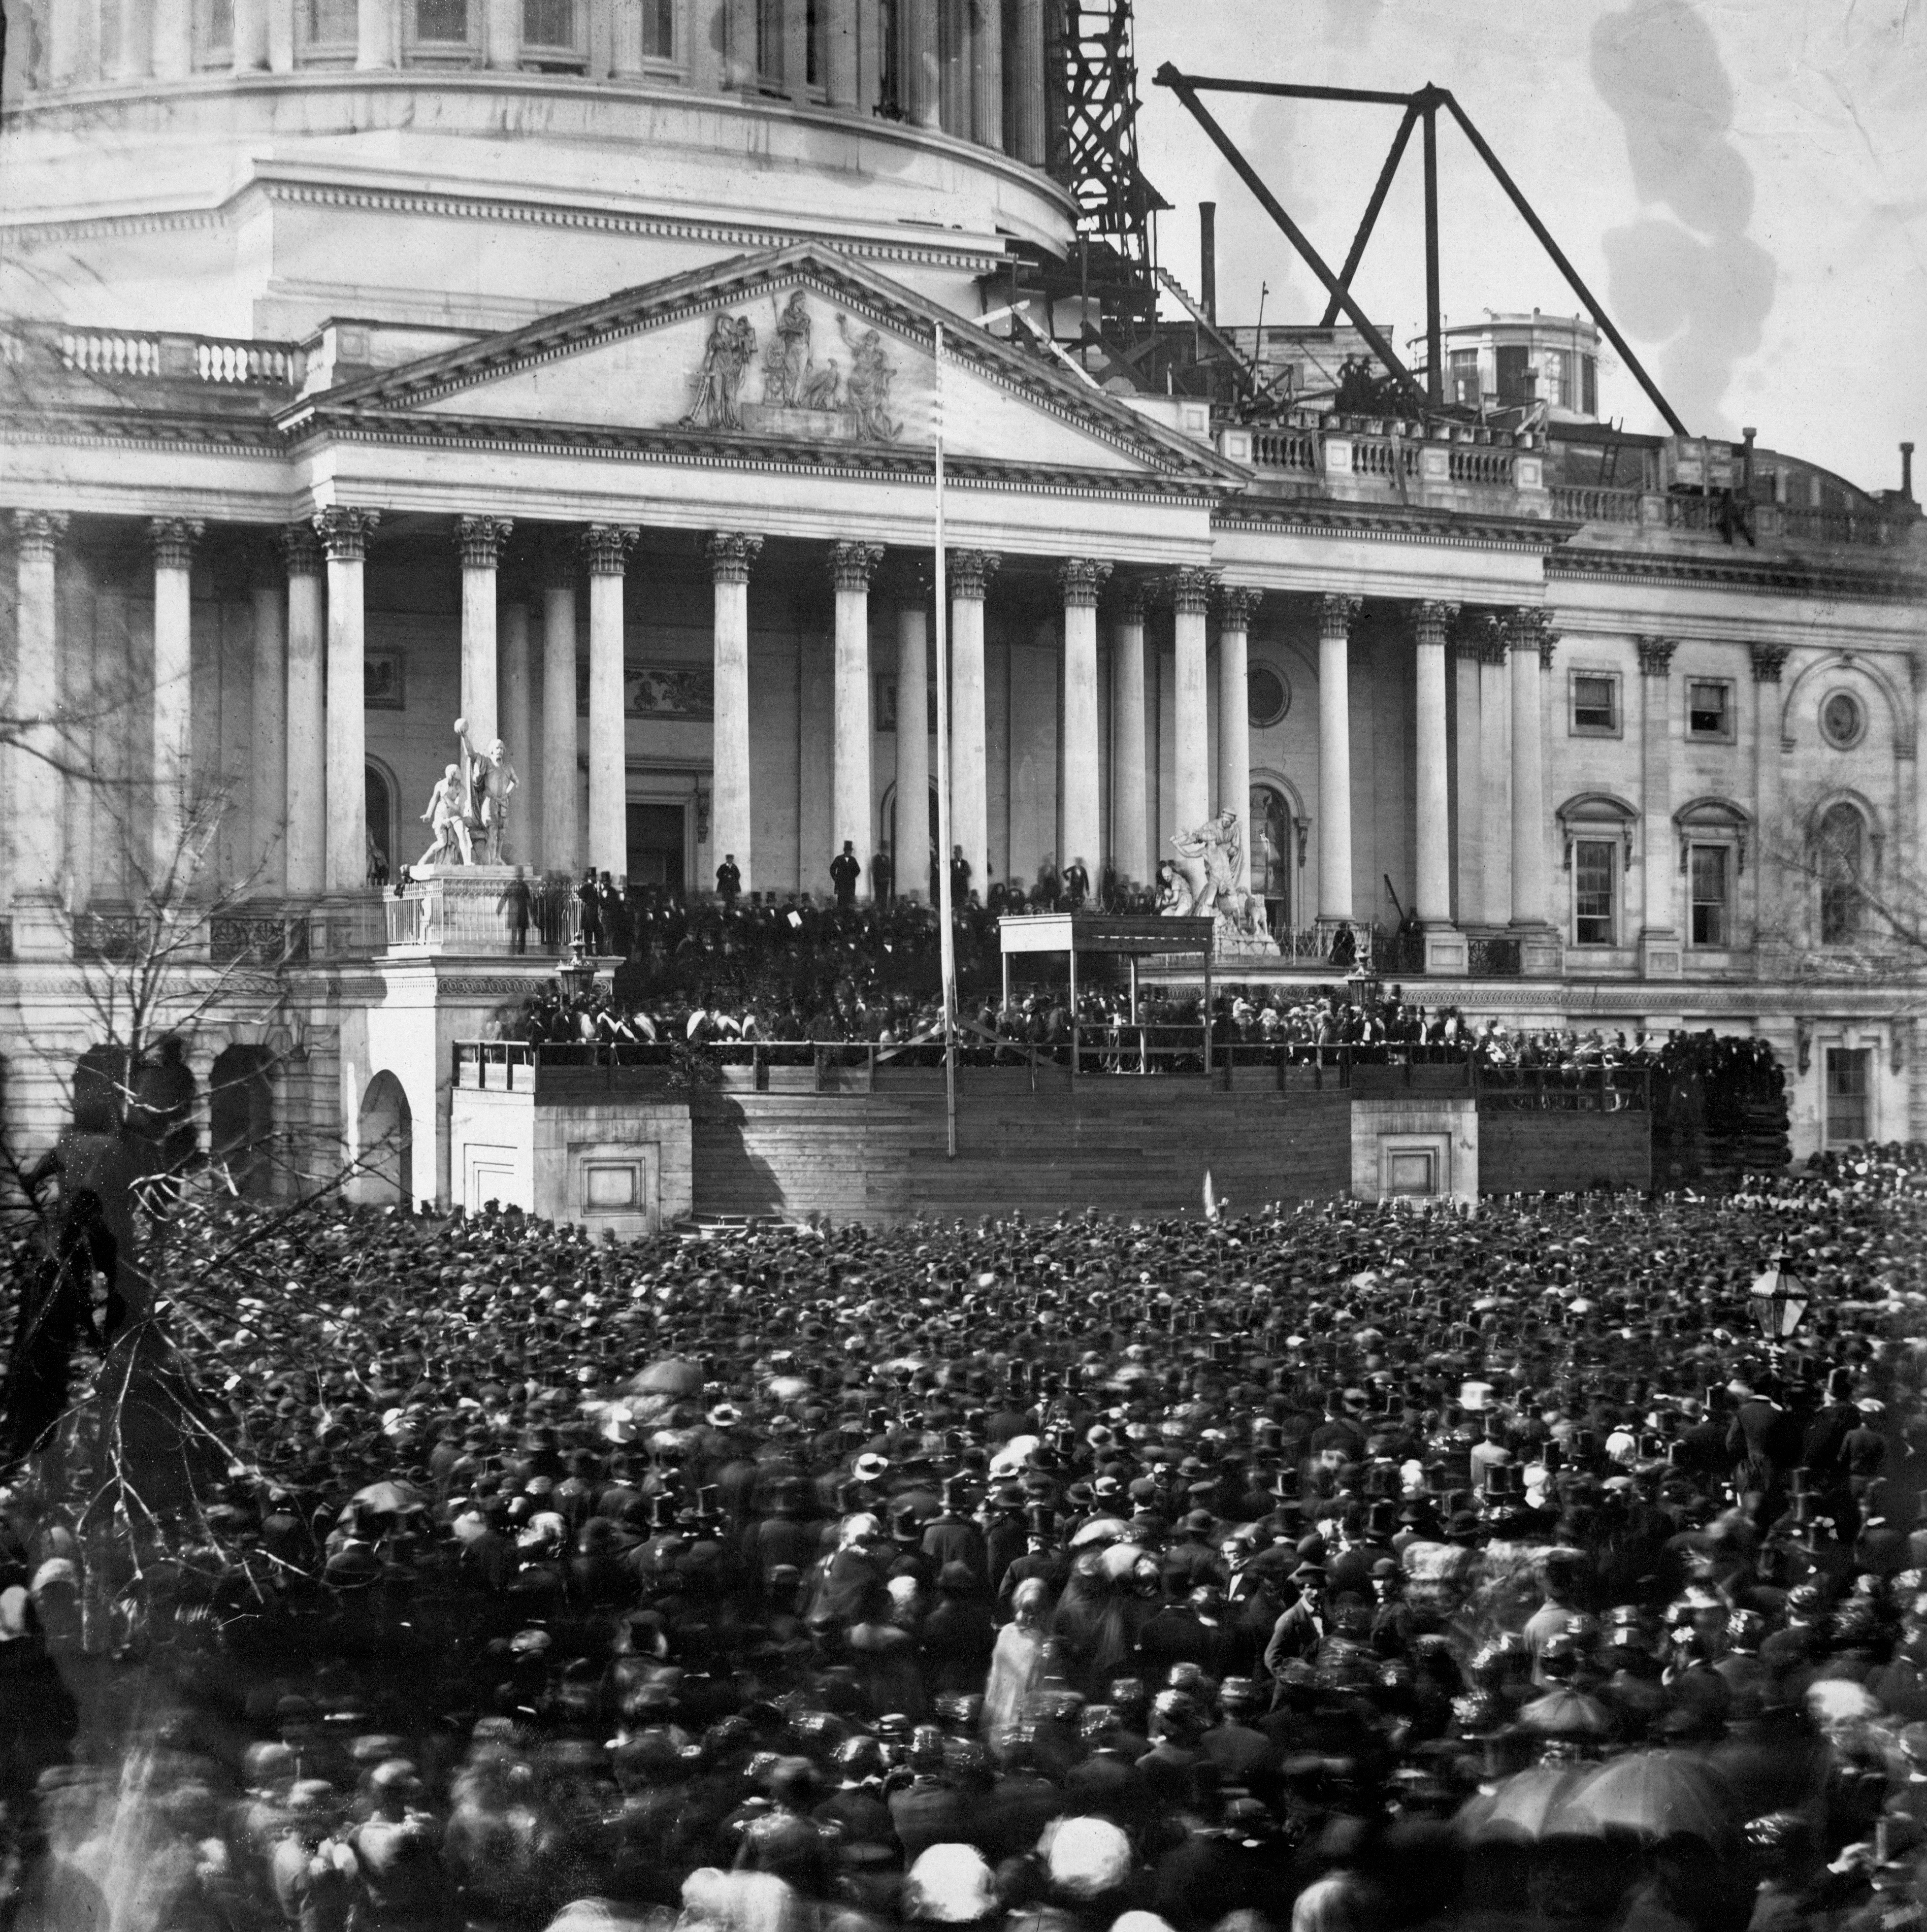 Inauguration of Abraham Lincoln in front of U.S. Capitol Building March 4 1861